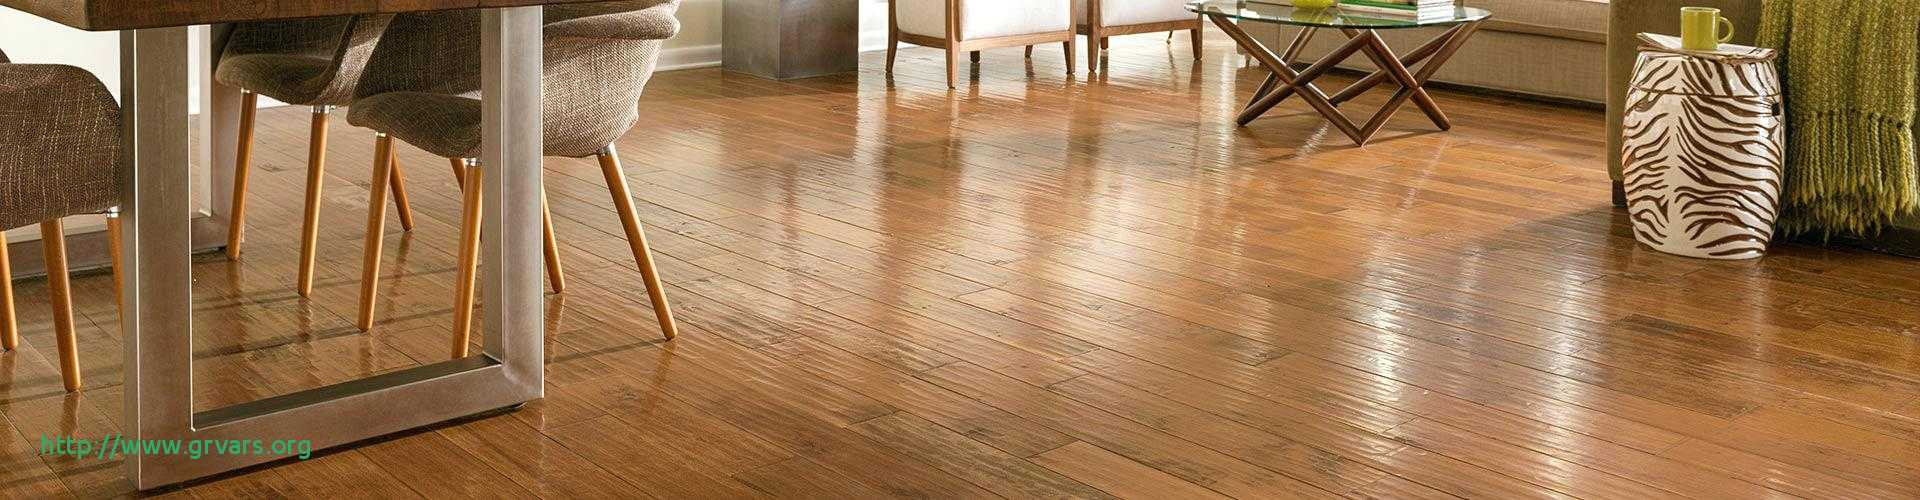 Pros and Cons Of Laminate Flooring Versus Hardwood Of Pros and Cons Of Laminate Flooring Versus Hardwood Luxe Od Grain for Pros and Cons Of Laminate Flooring Versus Hardwood Luxe Od Grain Tile Bathroom Wood Shower No Grout Porcelain Pros and Cons